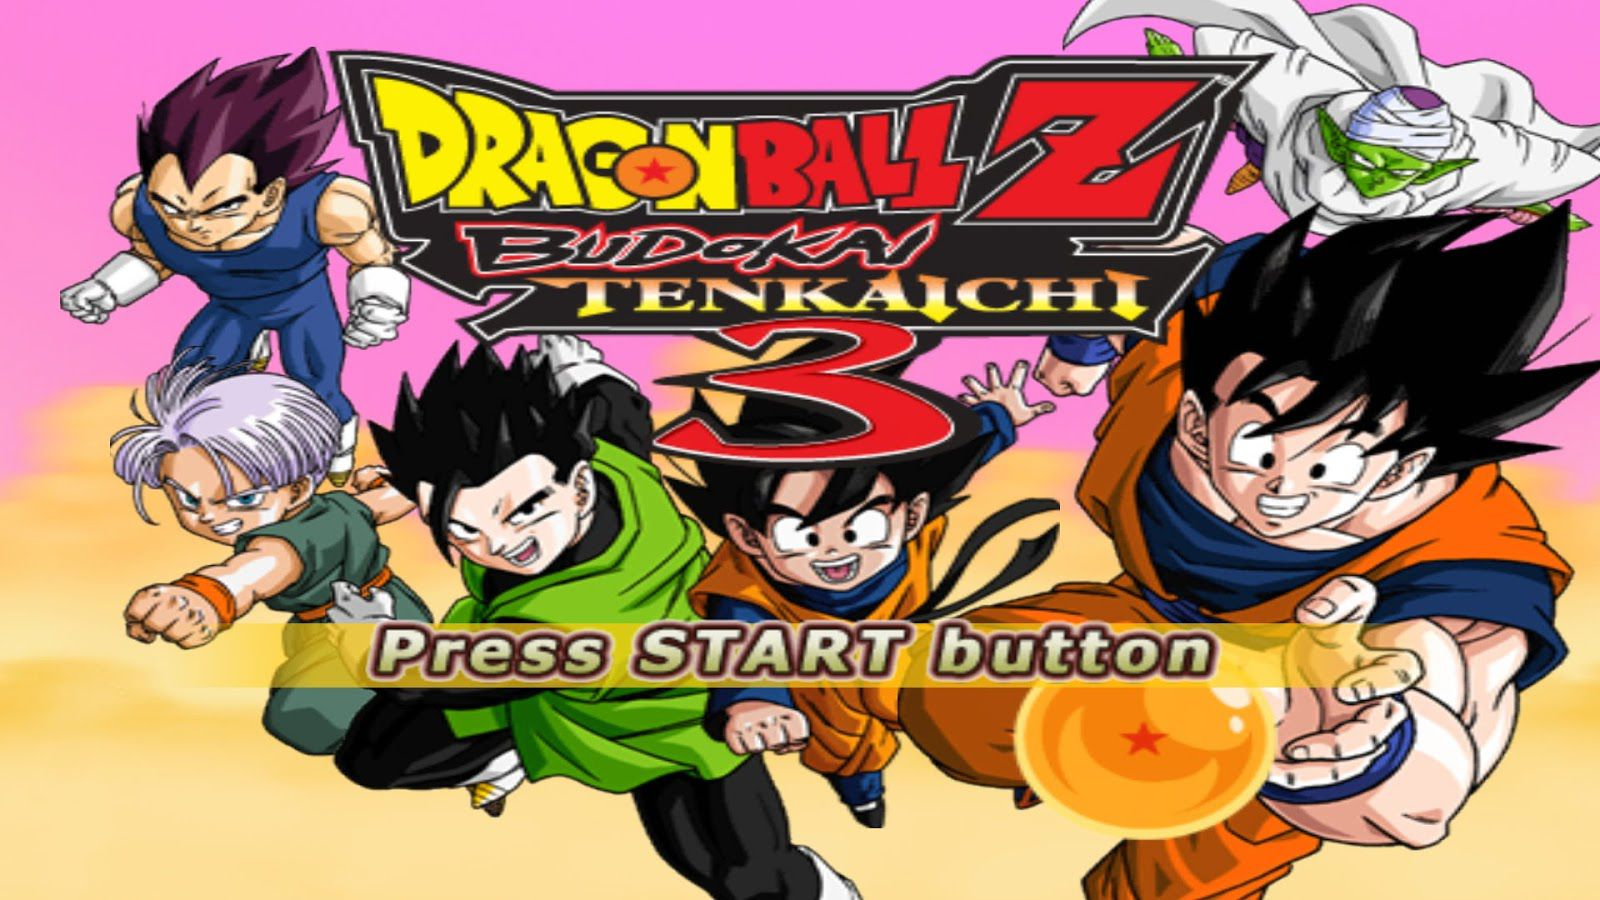 Free download game Dragon Ball Z Budokai Tenkaichi 3